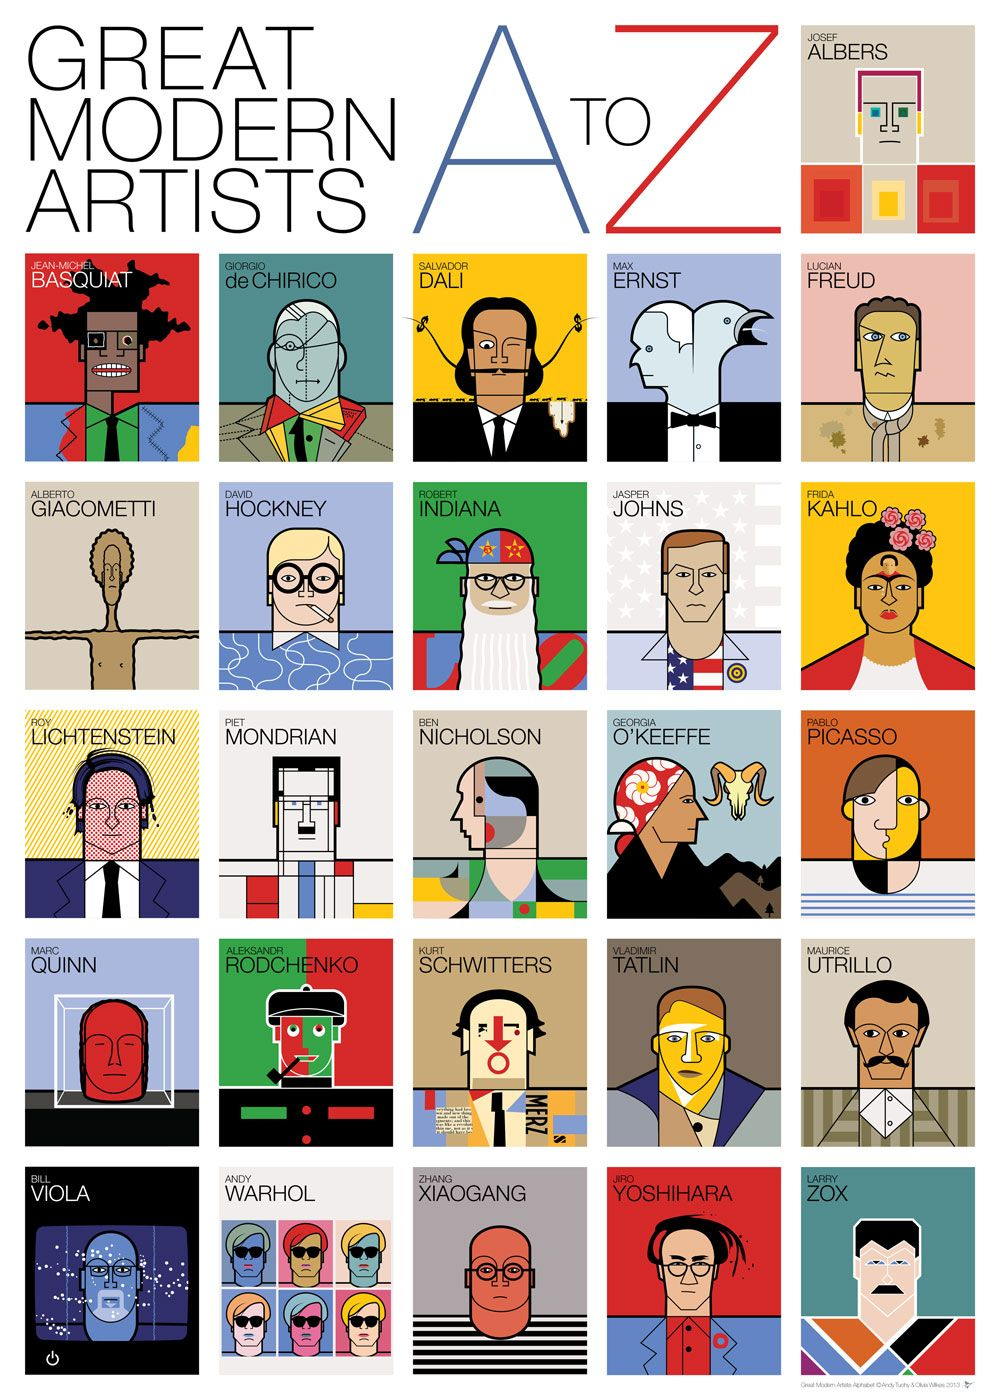 39 a to z of great modern artists 39 by andy tuohy prints. Black Bedroom Furniture Sets. Home Design Ideas